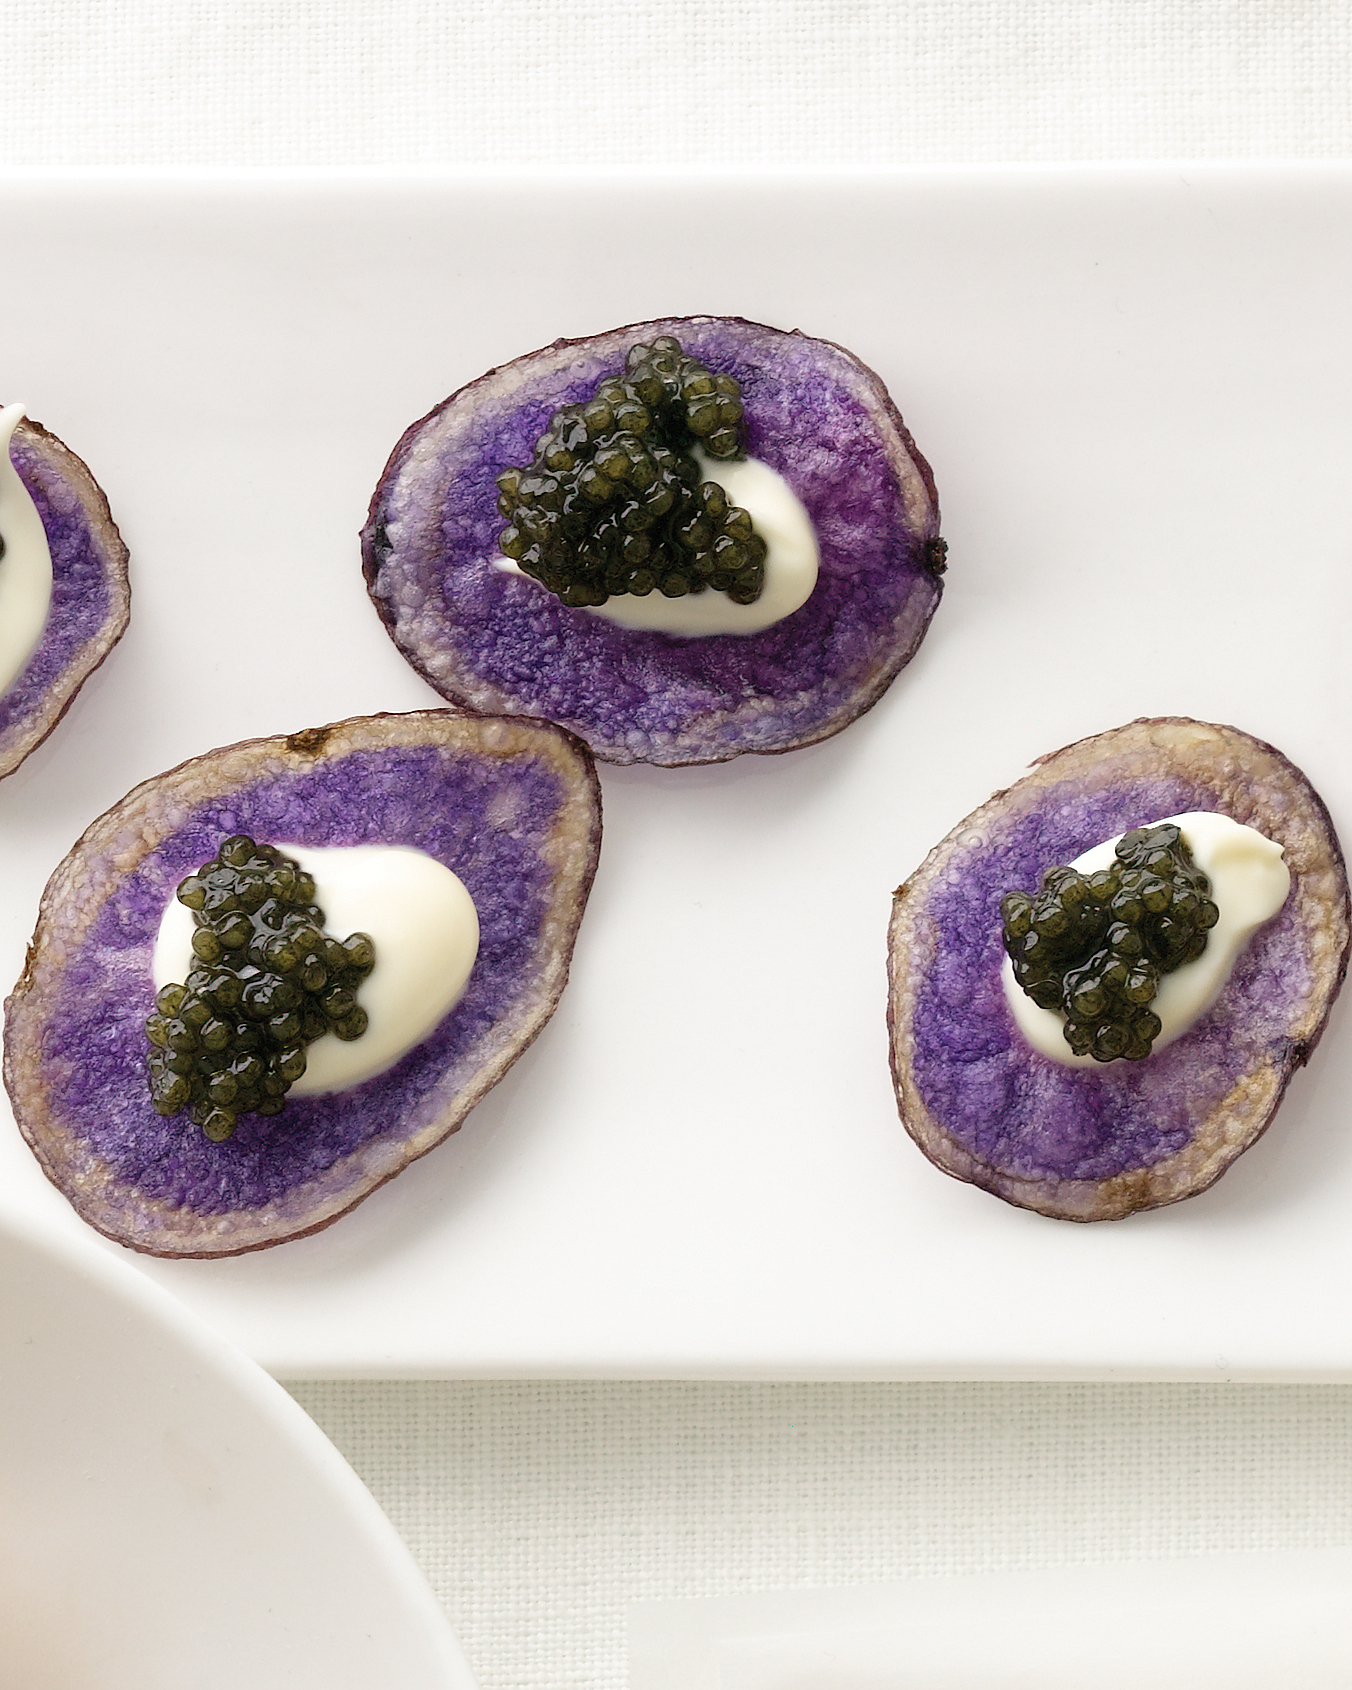 Purple Potato Chips With Crème Fraîche and Caviar